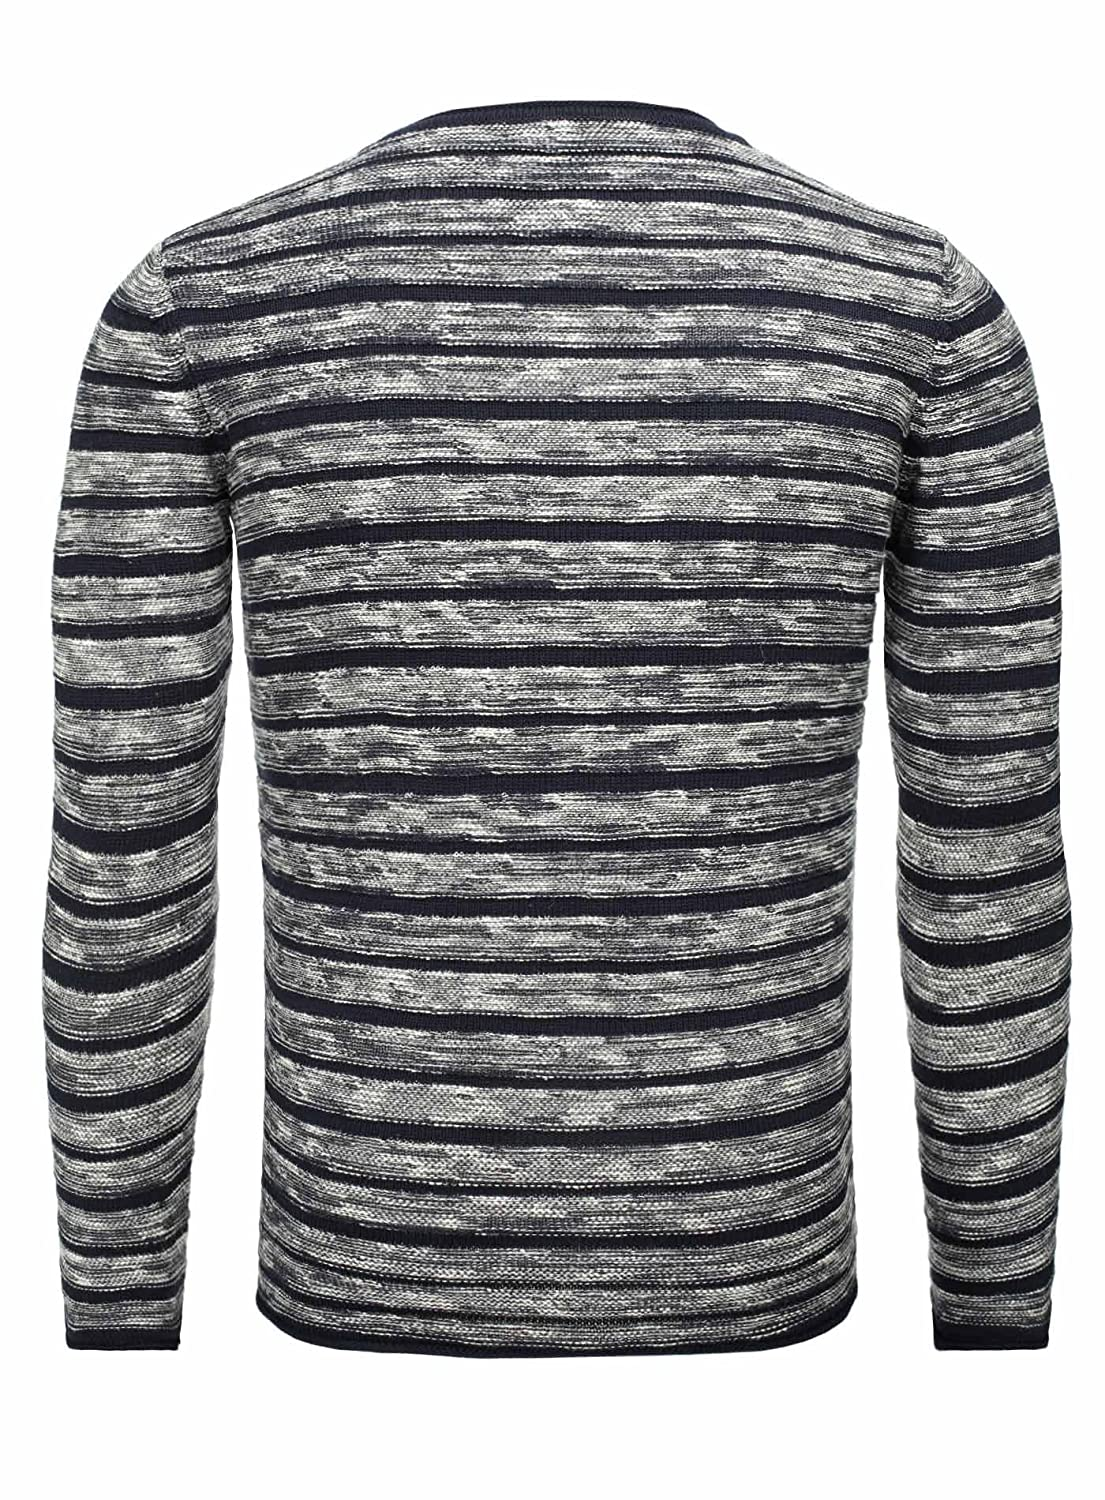 Key Largo Men Knitted Jumper ADVANCE Oversize Section Crew Neck Striped Long Sleeve